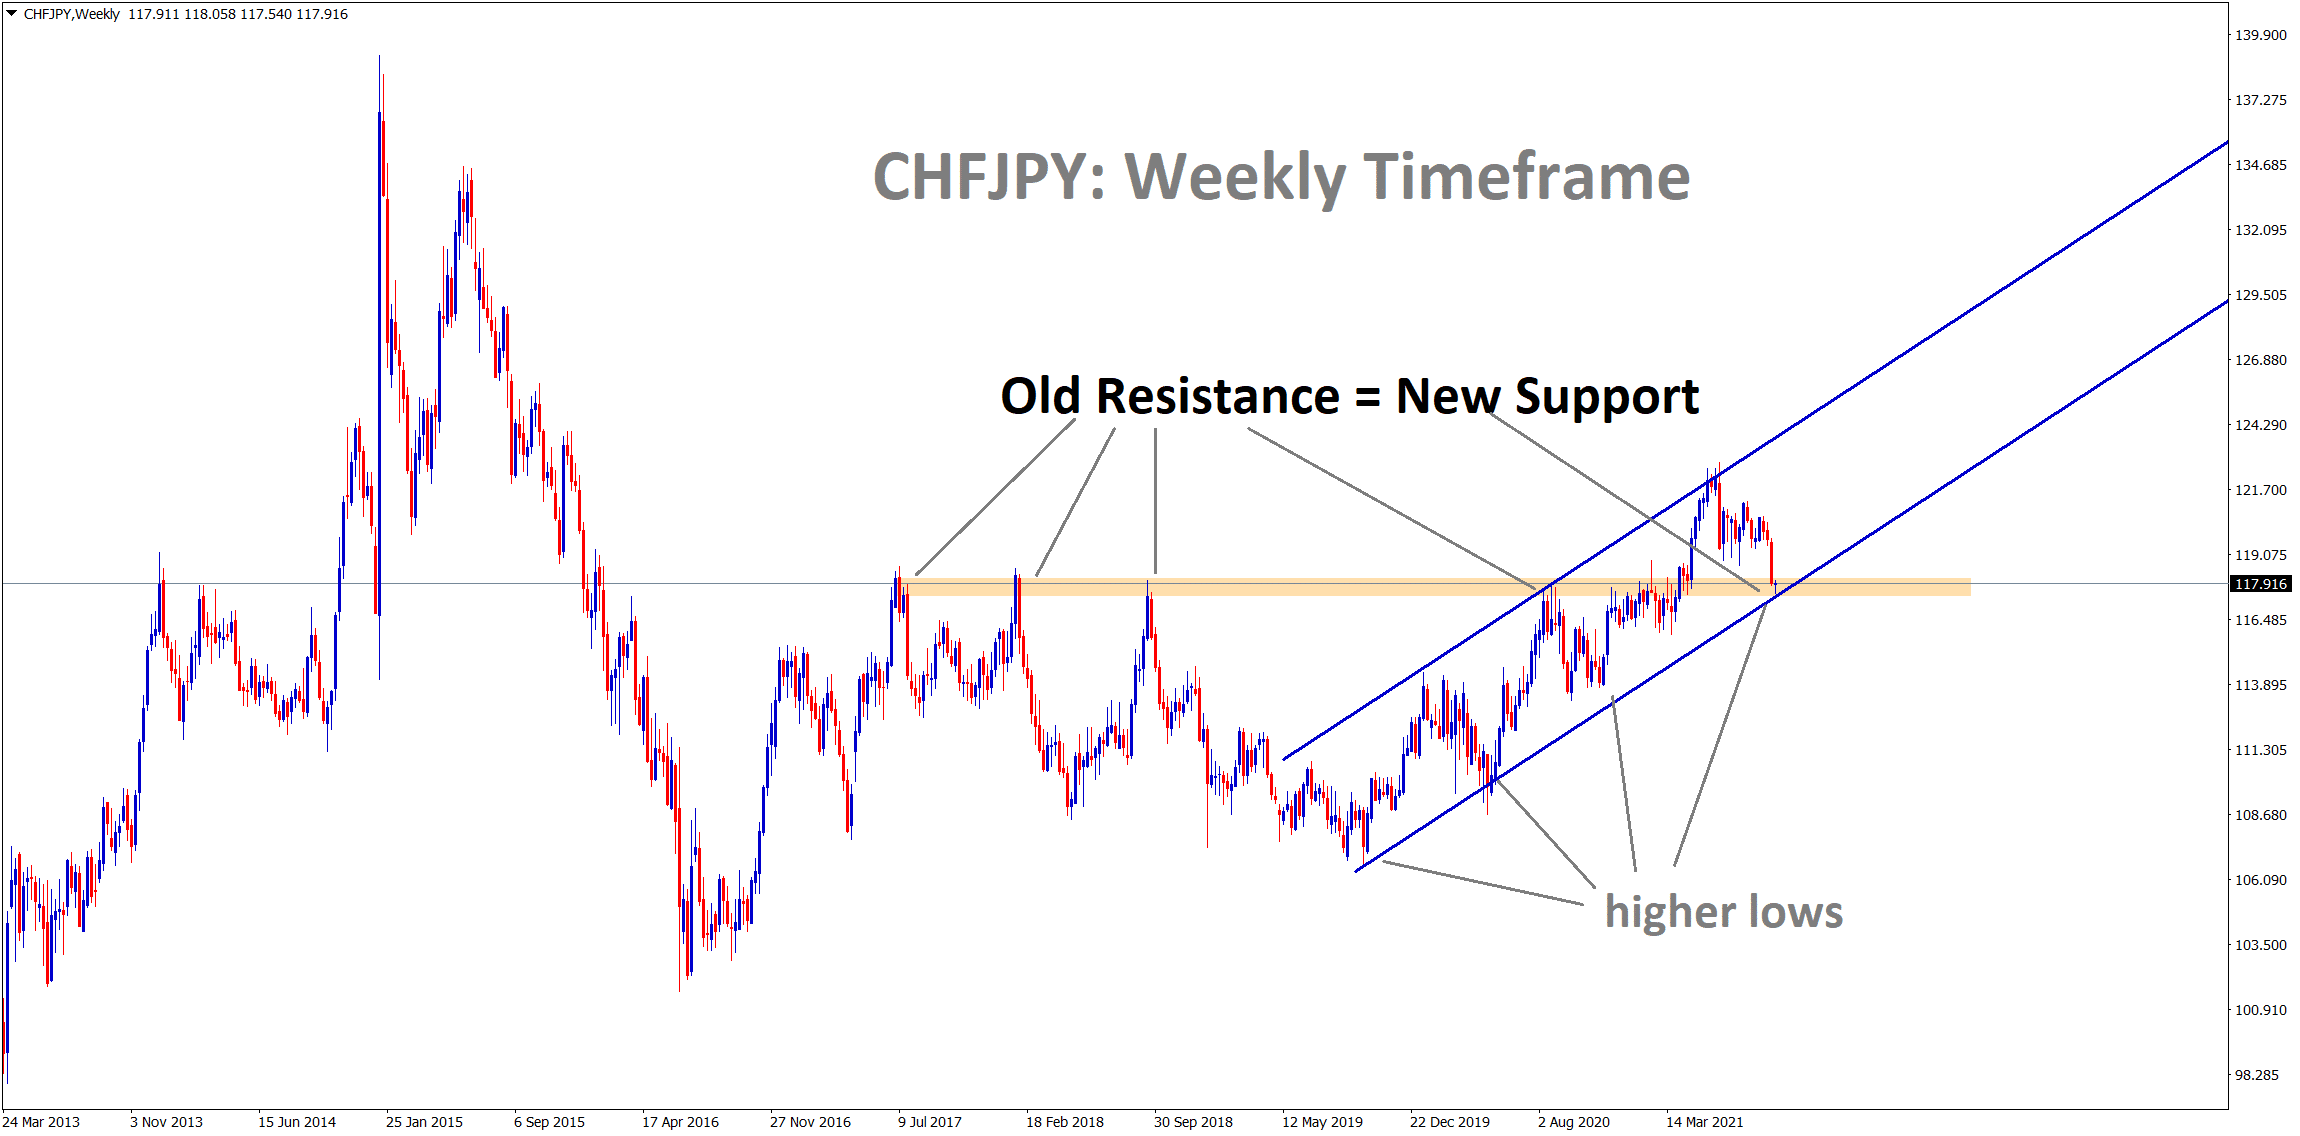 CHFJPY hits the previous strong resistance which may become a new support soon.